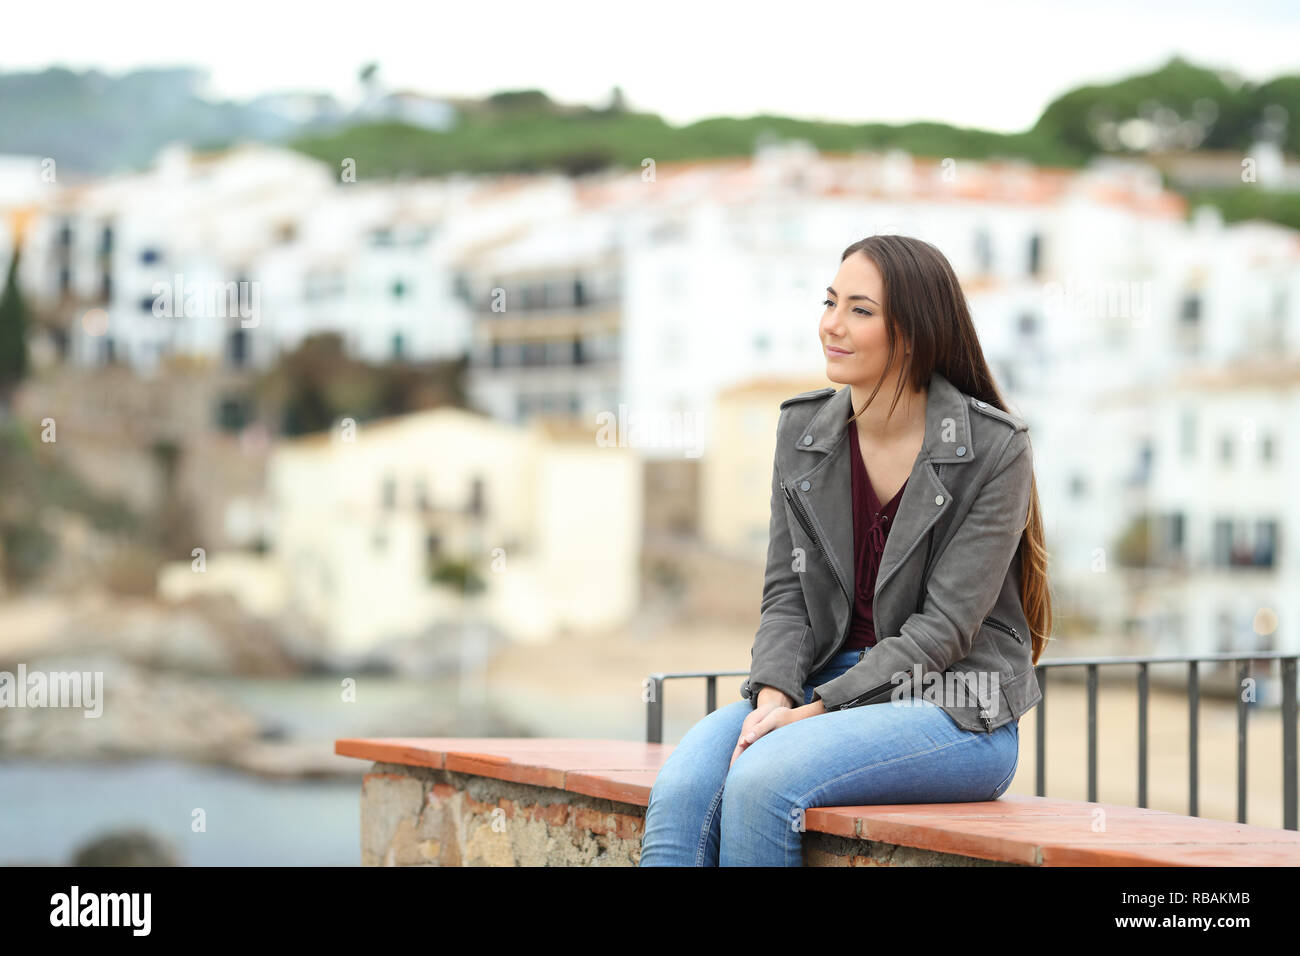 Relaxed woman contemplating views sitting on a ledge in a coast town on vacation - Stock Image